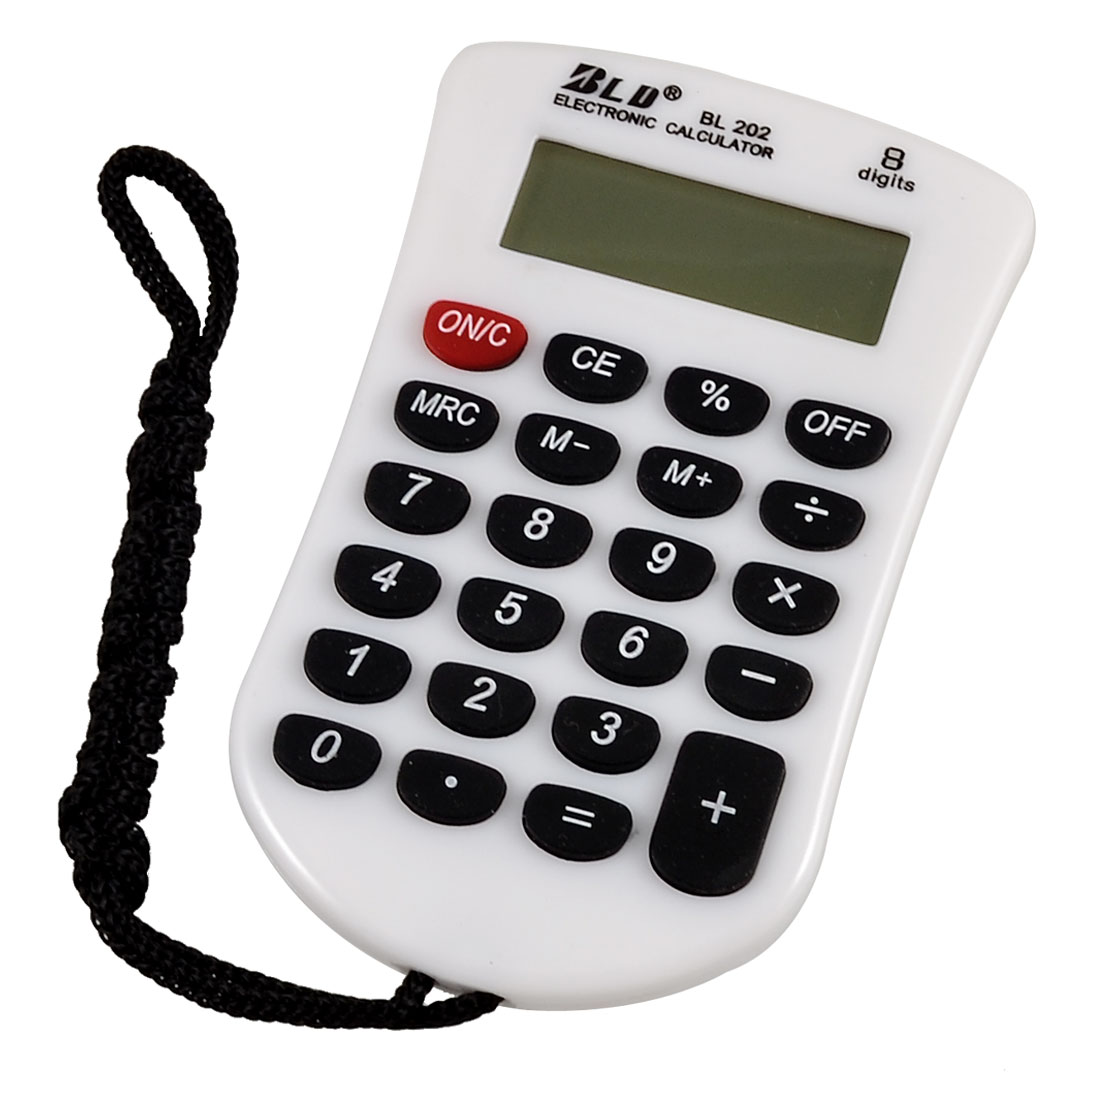 Students Black White Keys 23 Rubber Keys LCD Mini Calculator w Neck Strap